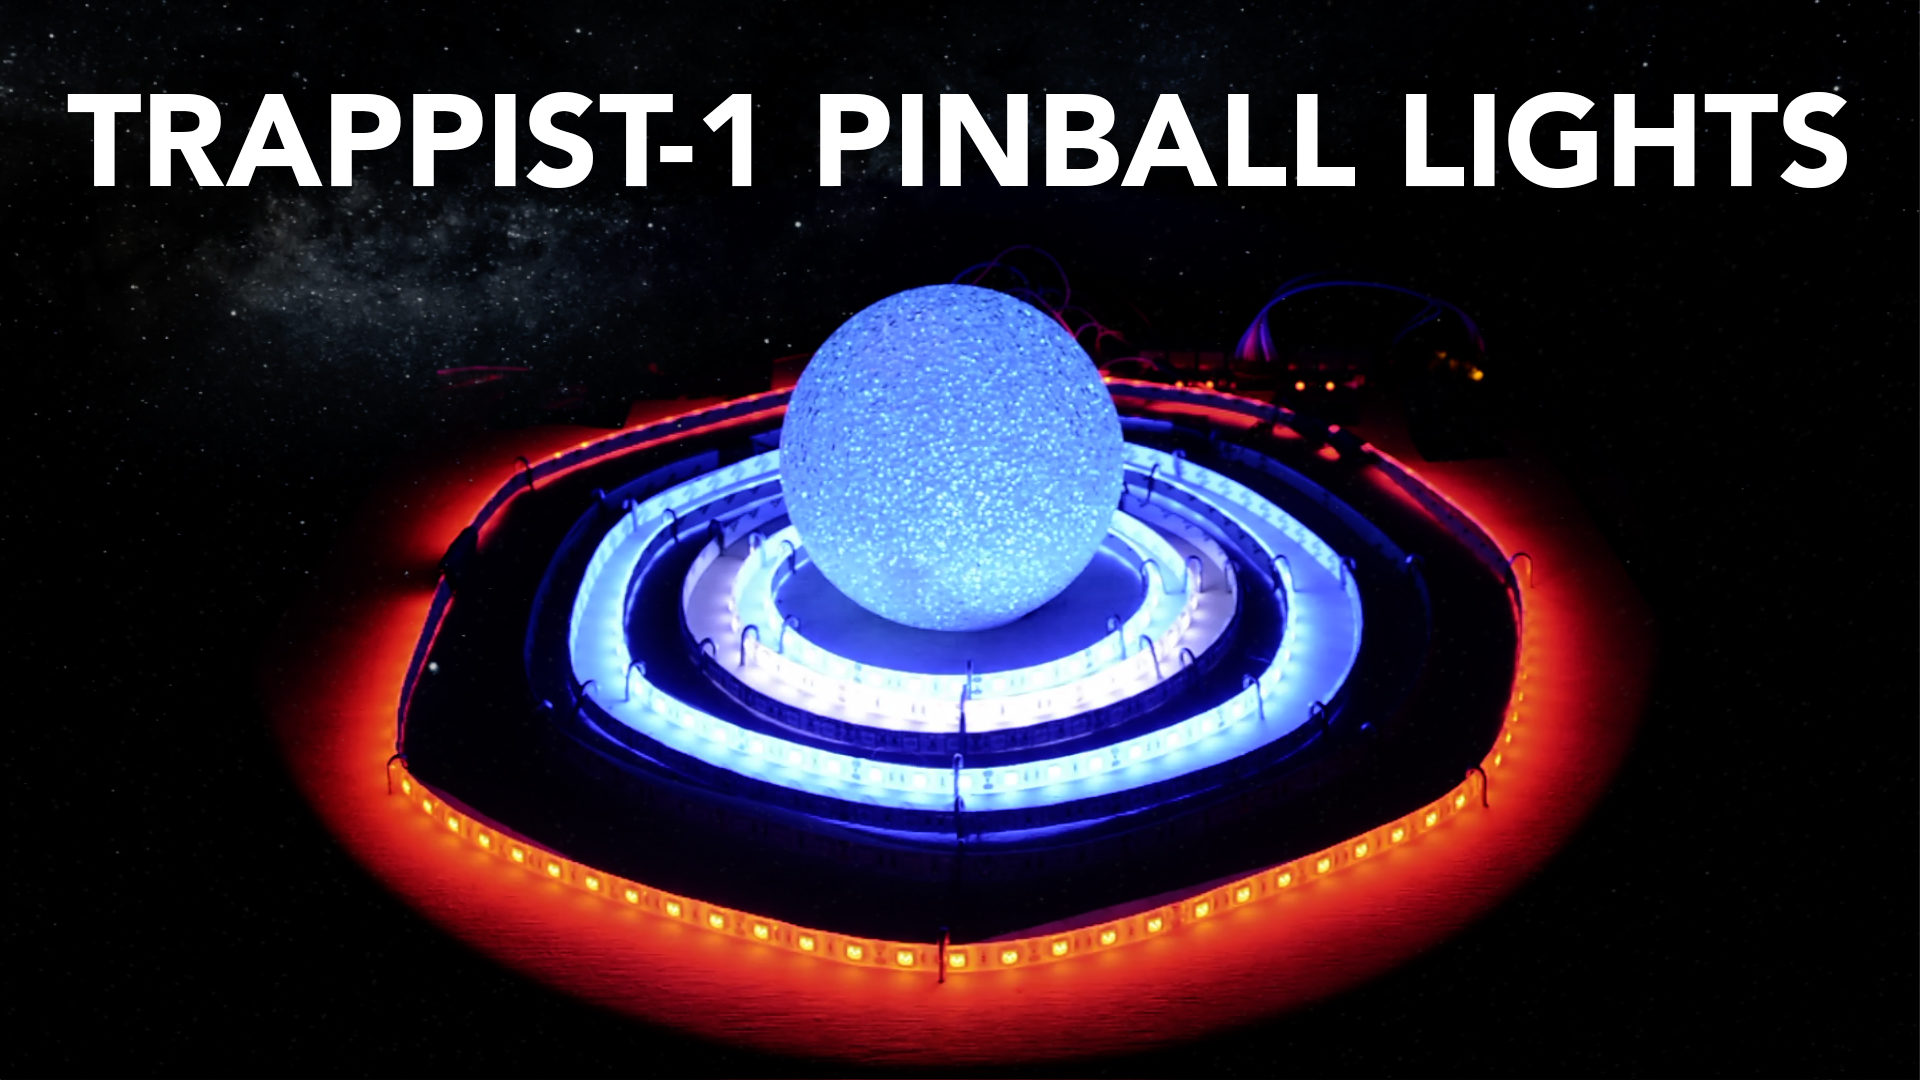 Trappist Pinball Lights.jpg